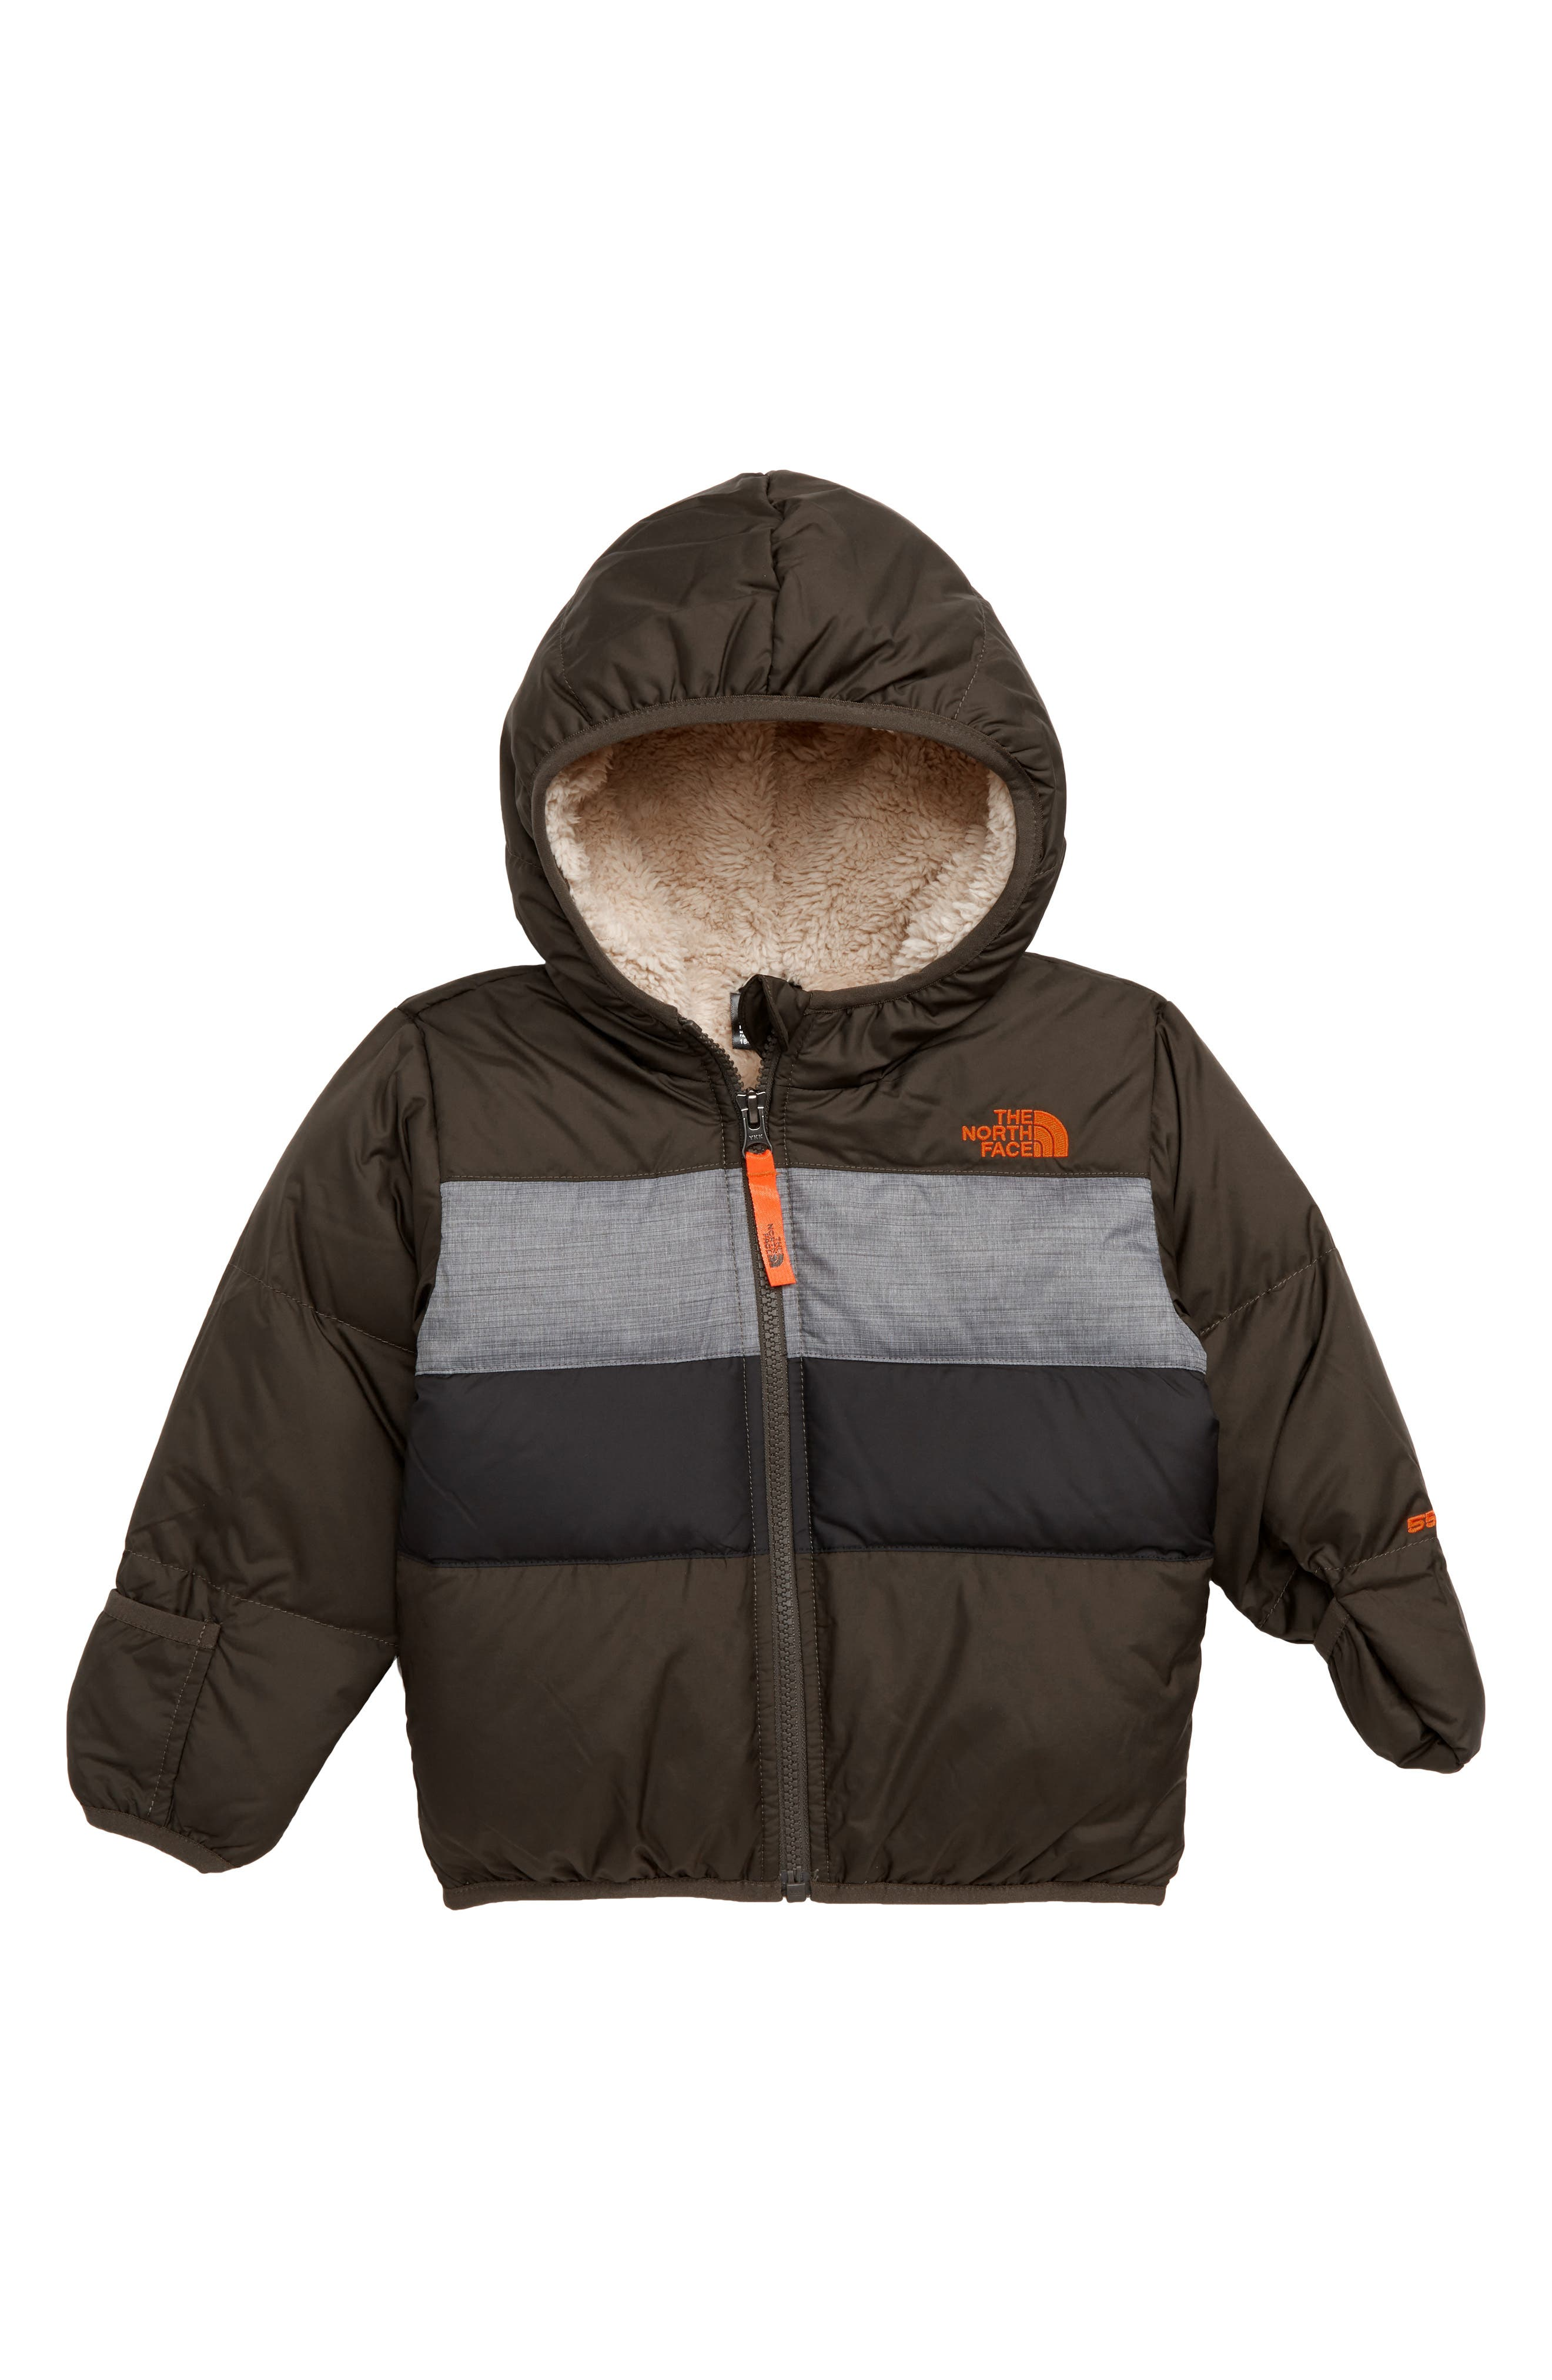 THE NORTH FACE Moondoggy 2.0 Water Repellent Down Jacket, Main, color, 301